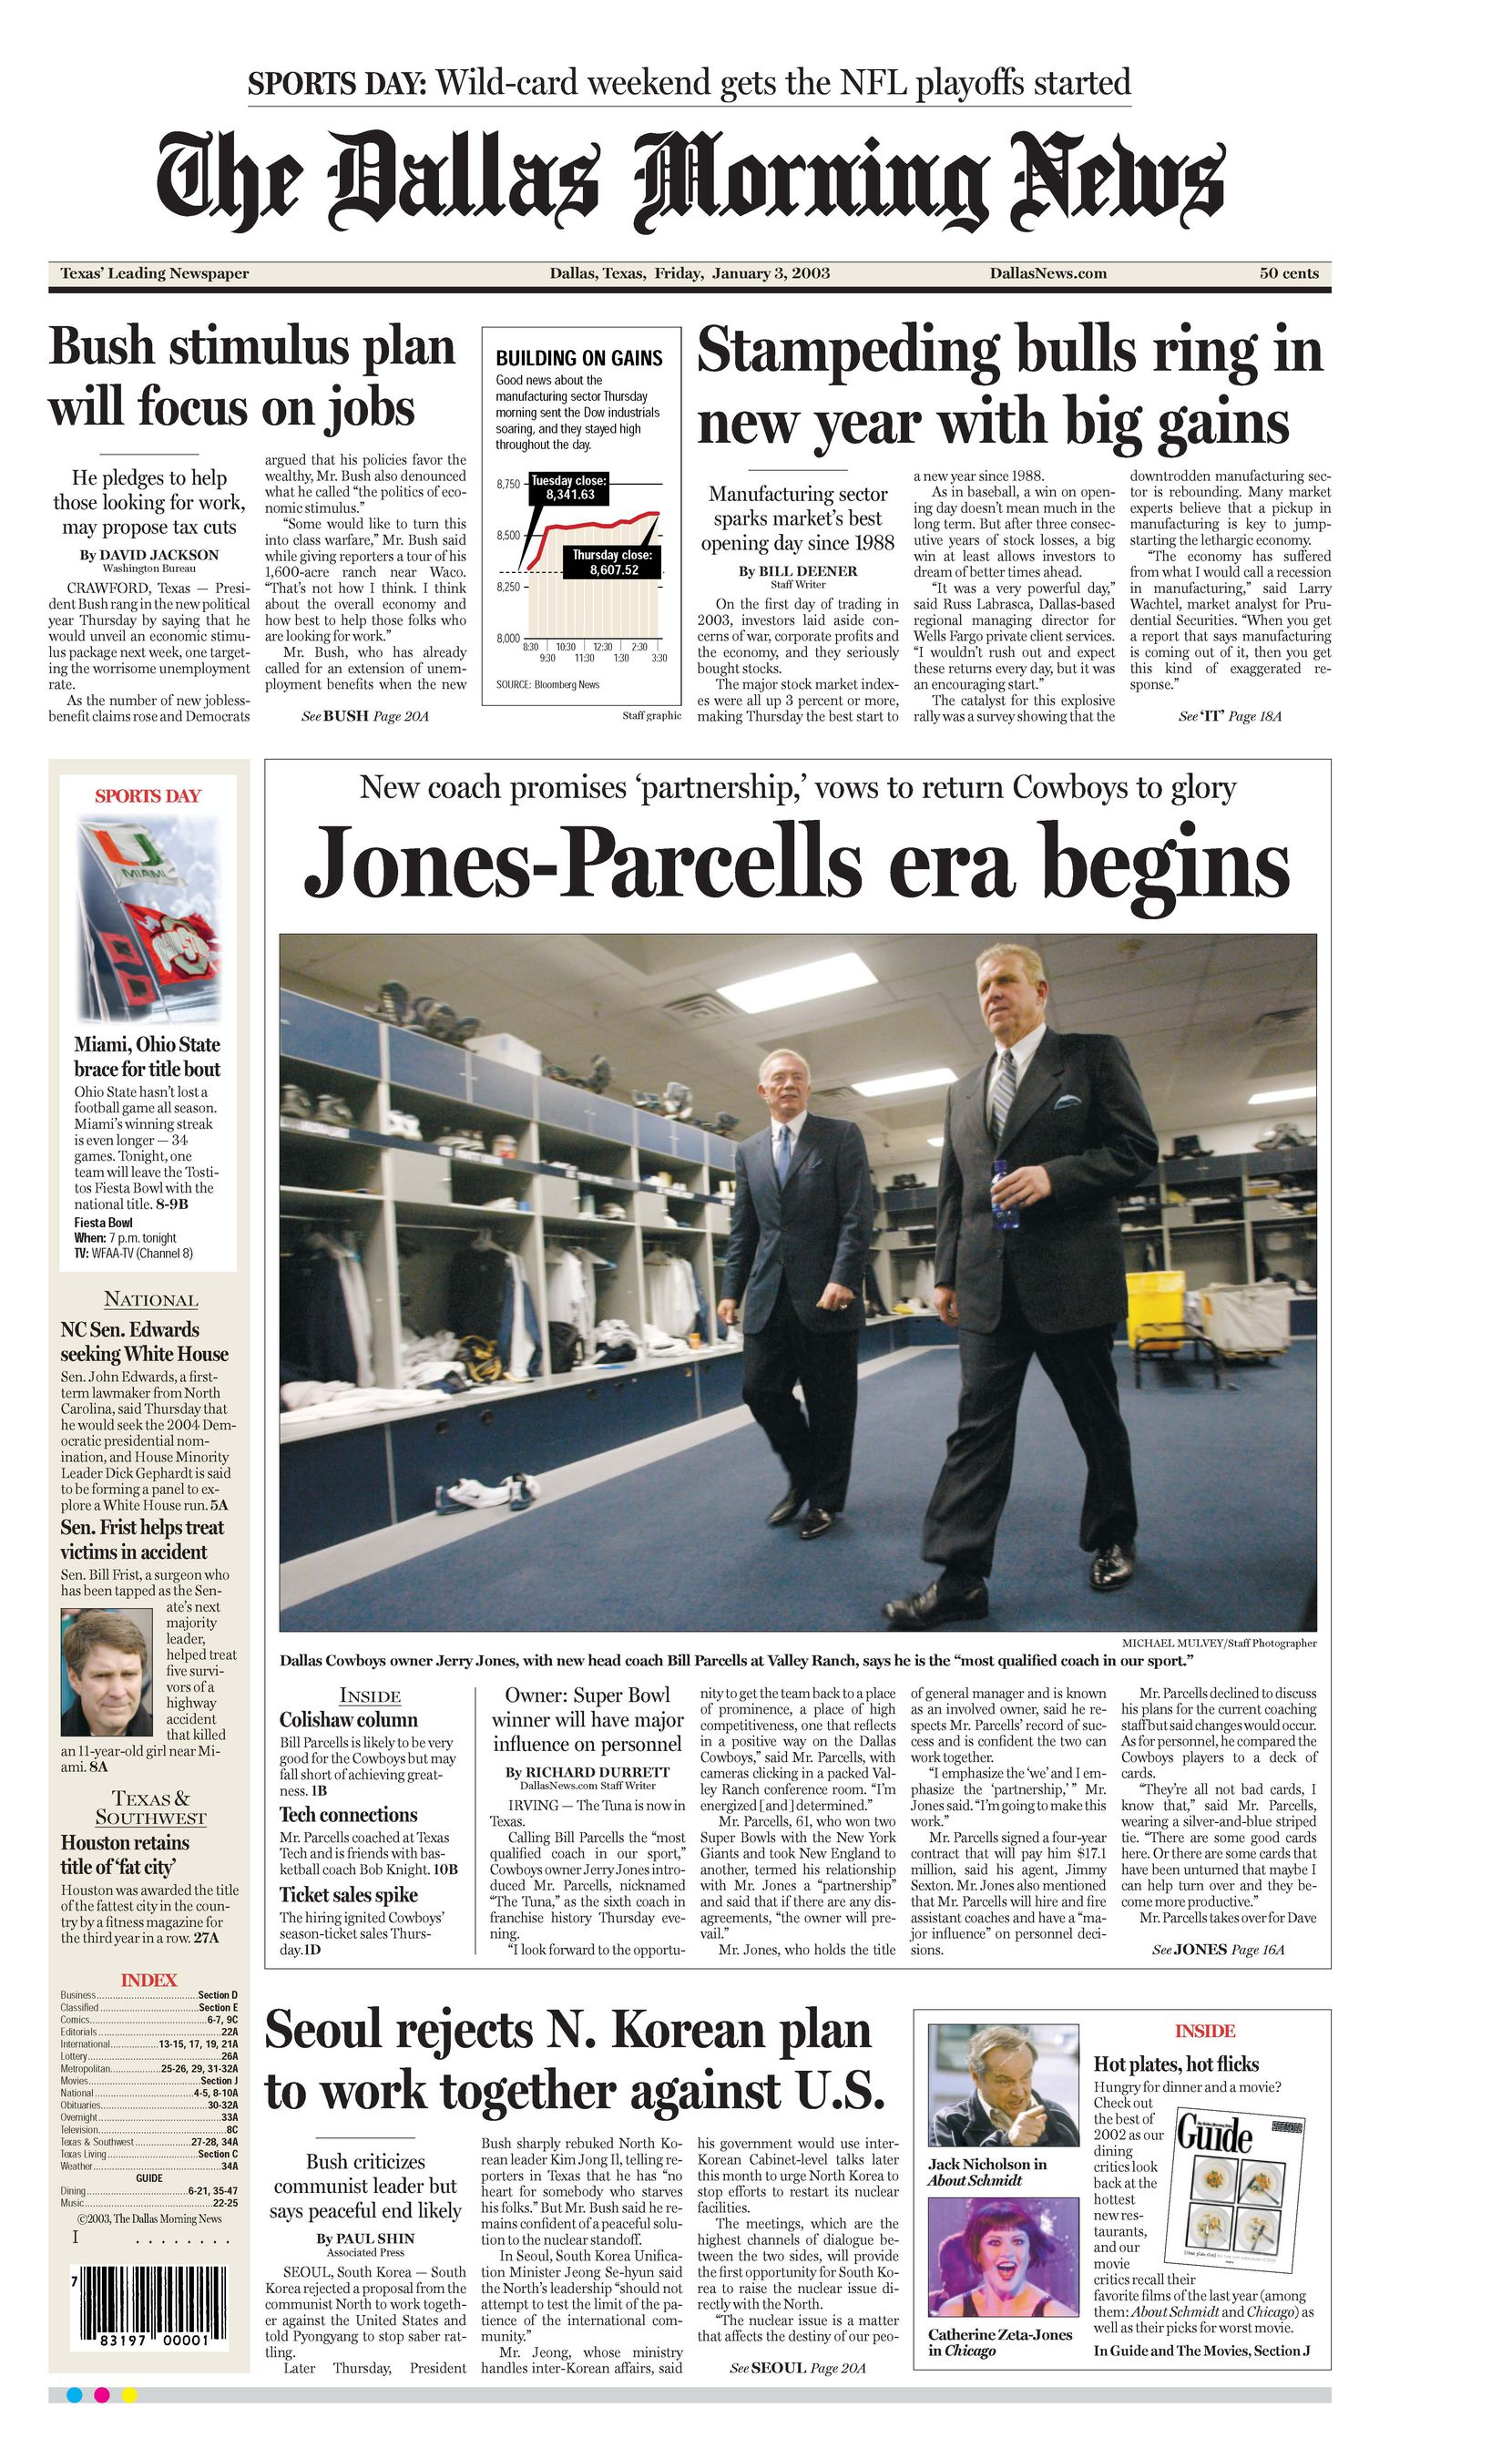 Front page Jan. 3, 2003. 'Jones- Parcells era begins.'